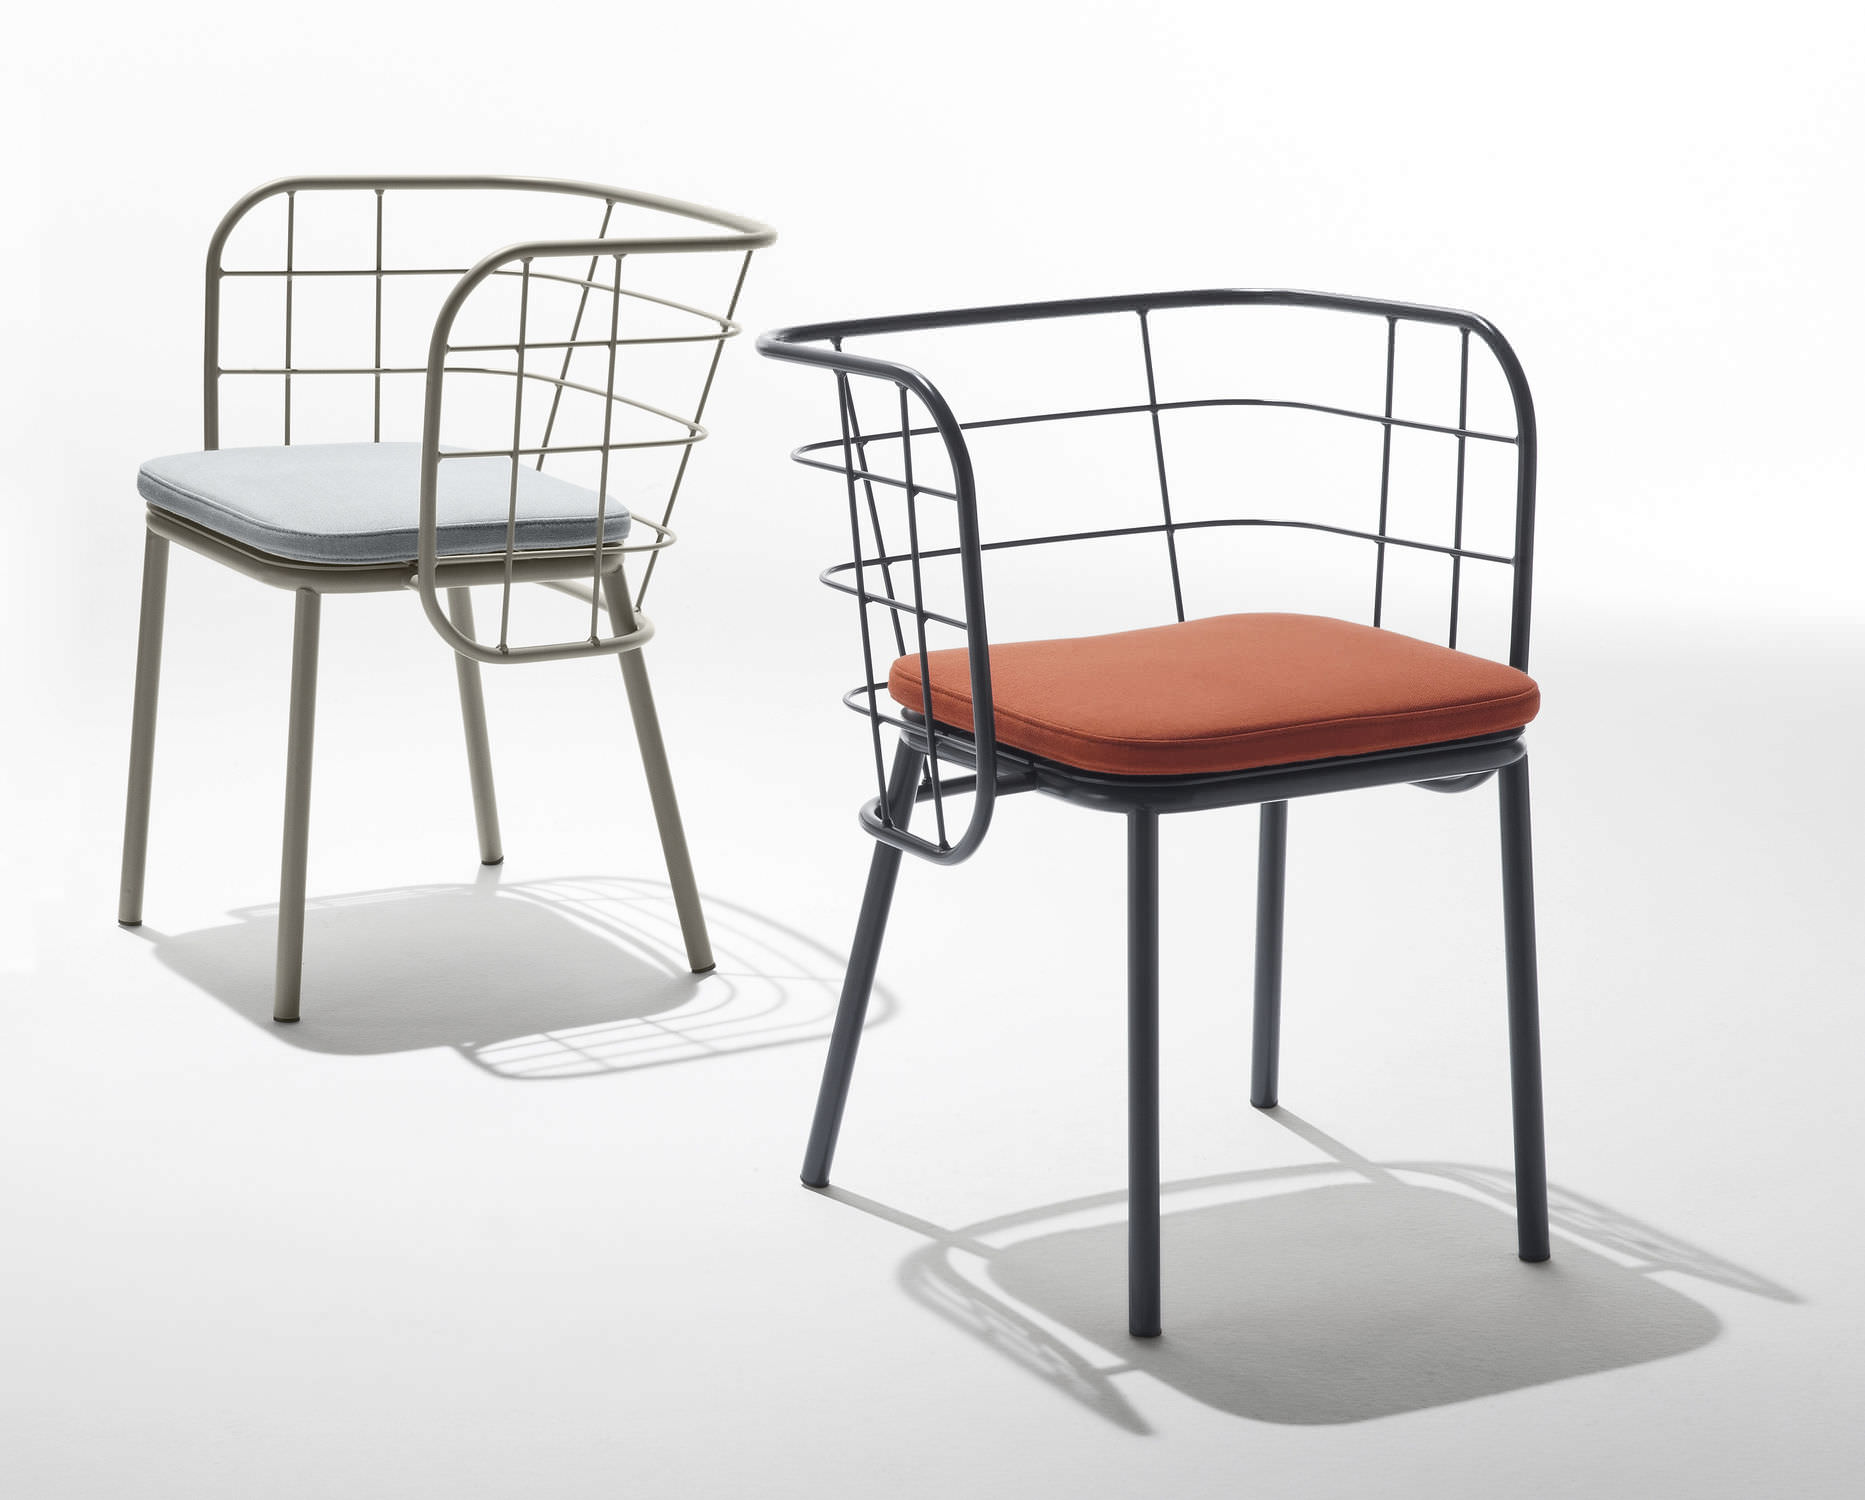 contemporary metal furniture. Contemporary Chair / Upholstered With Armrests Metal JUJUBE SP A By 4P1B Design Studio Furniture T